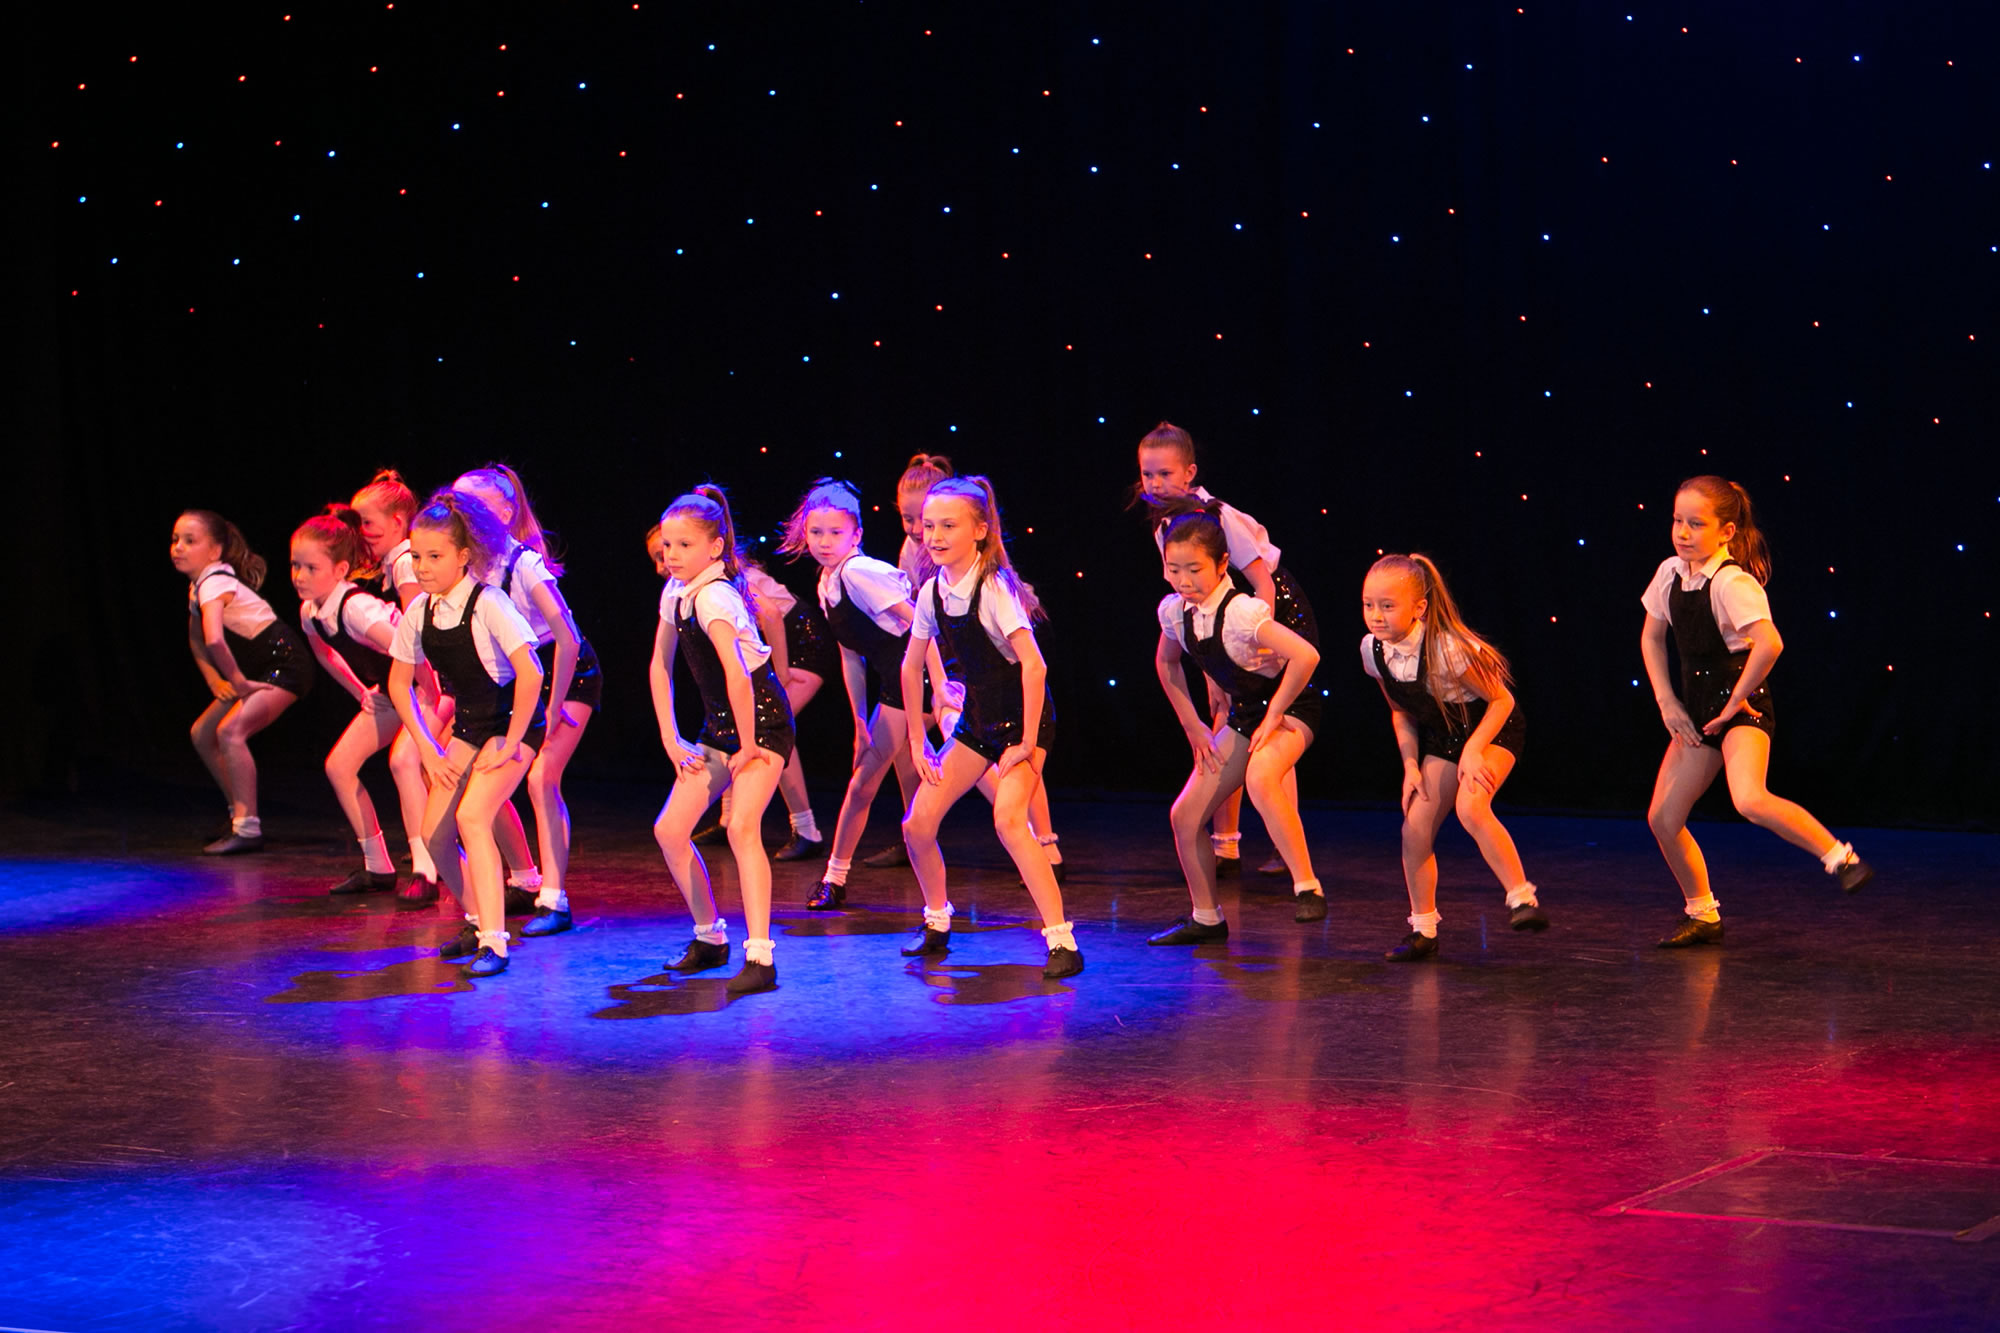 Hitchin_School_of_Dance_Show_2019-SM1_3099.jpg